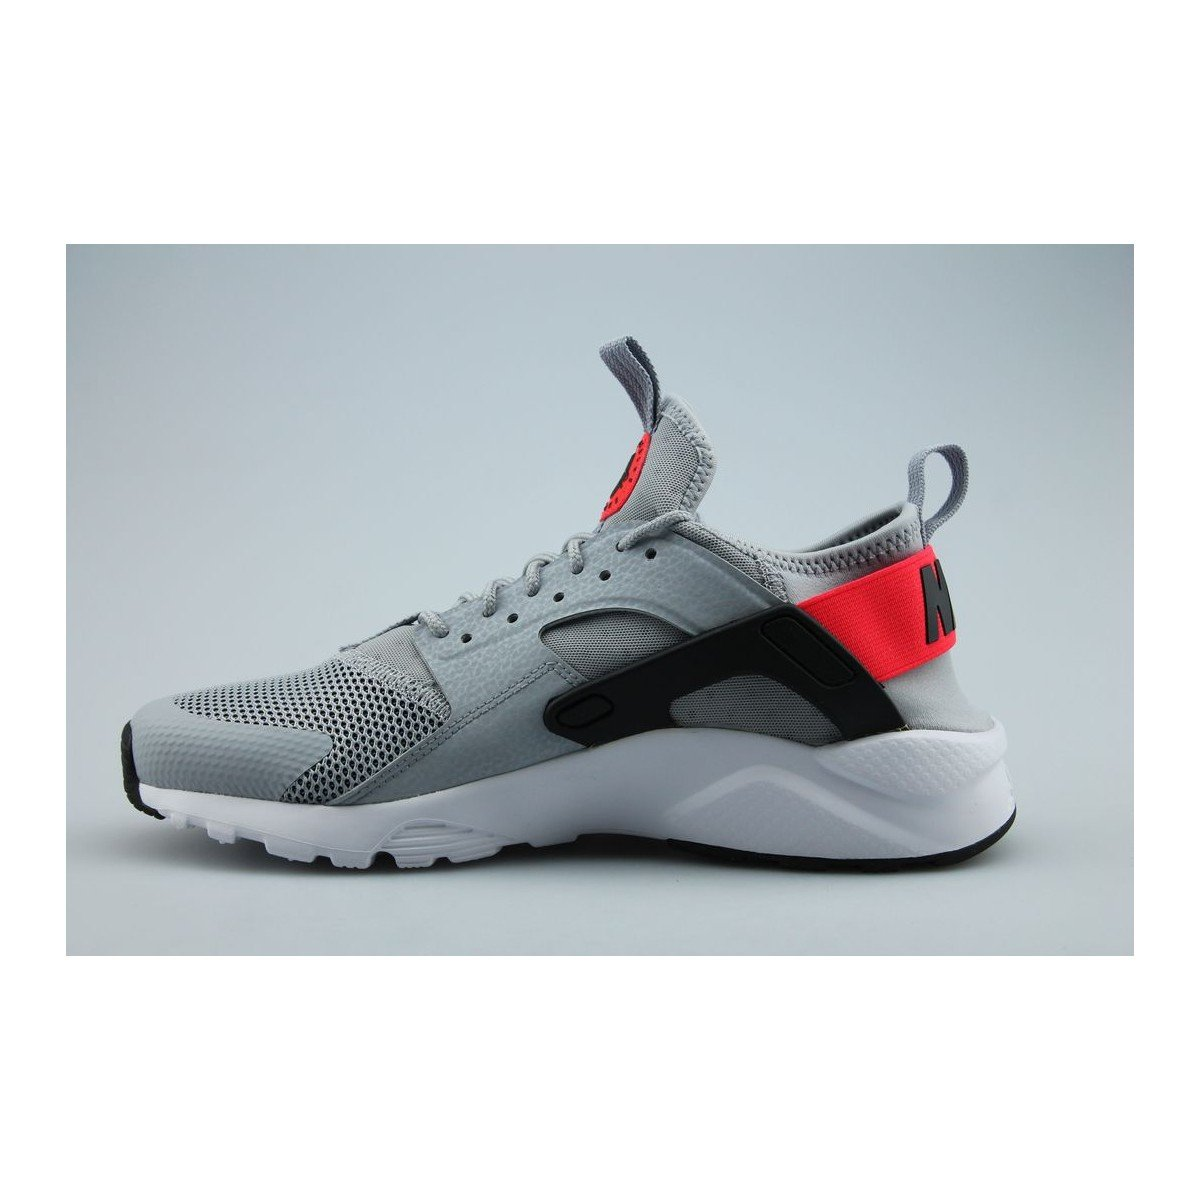 3f2c8c049d3a Nike AIR Huarache Run Ultra GS - Trainers